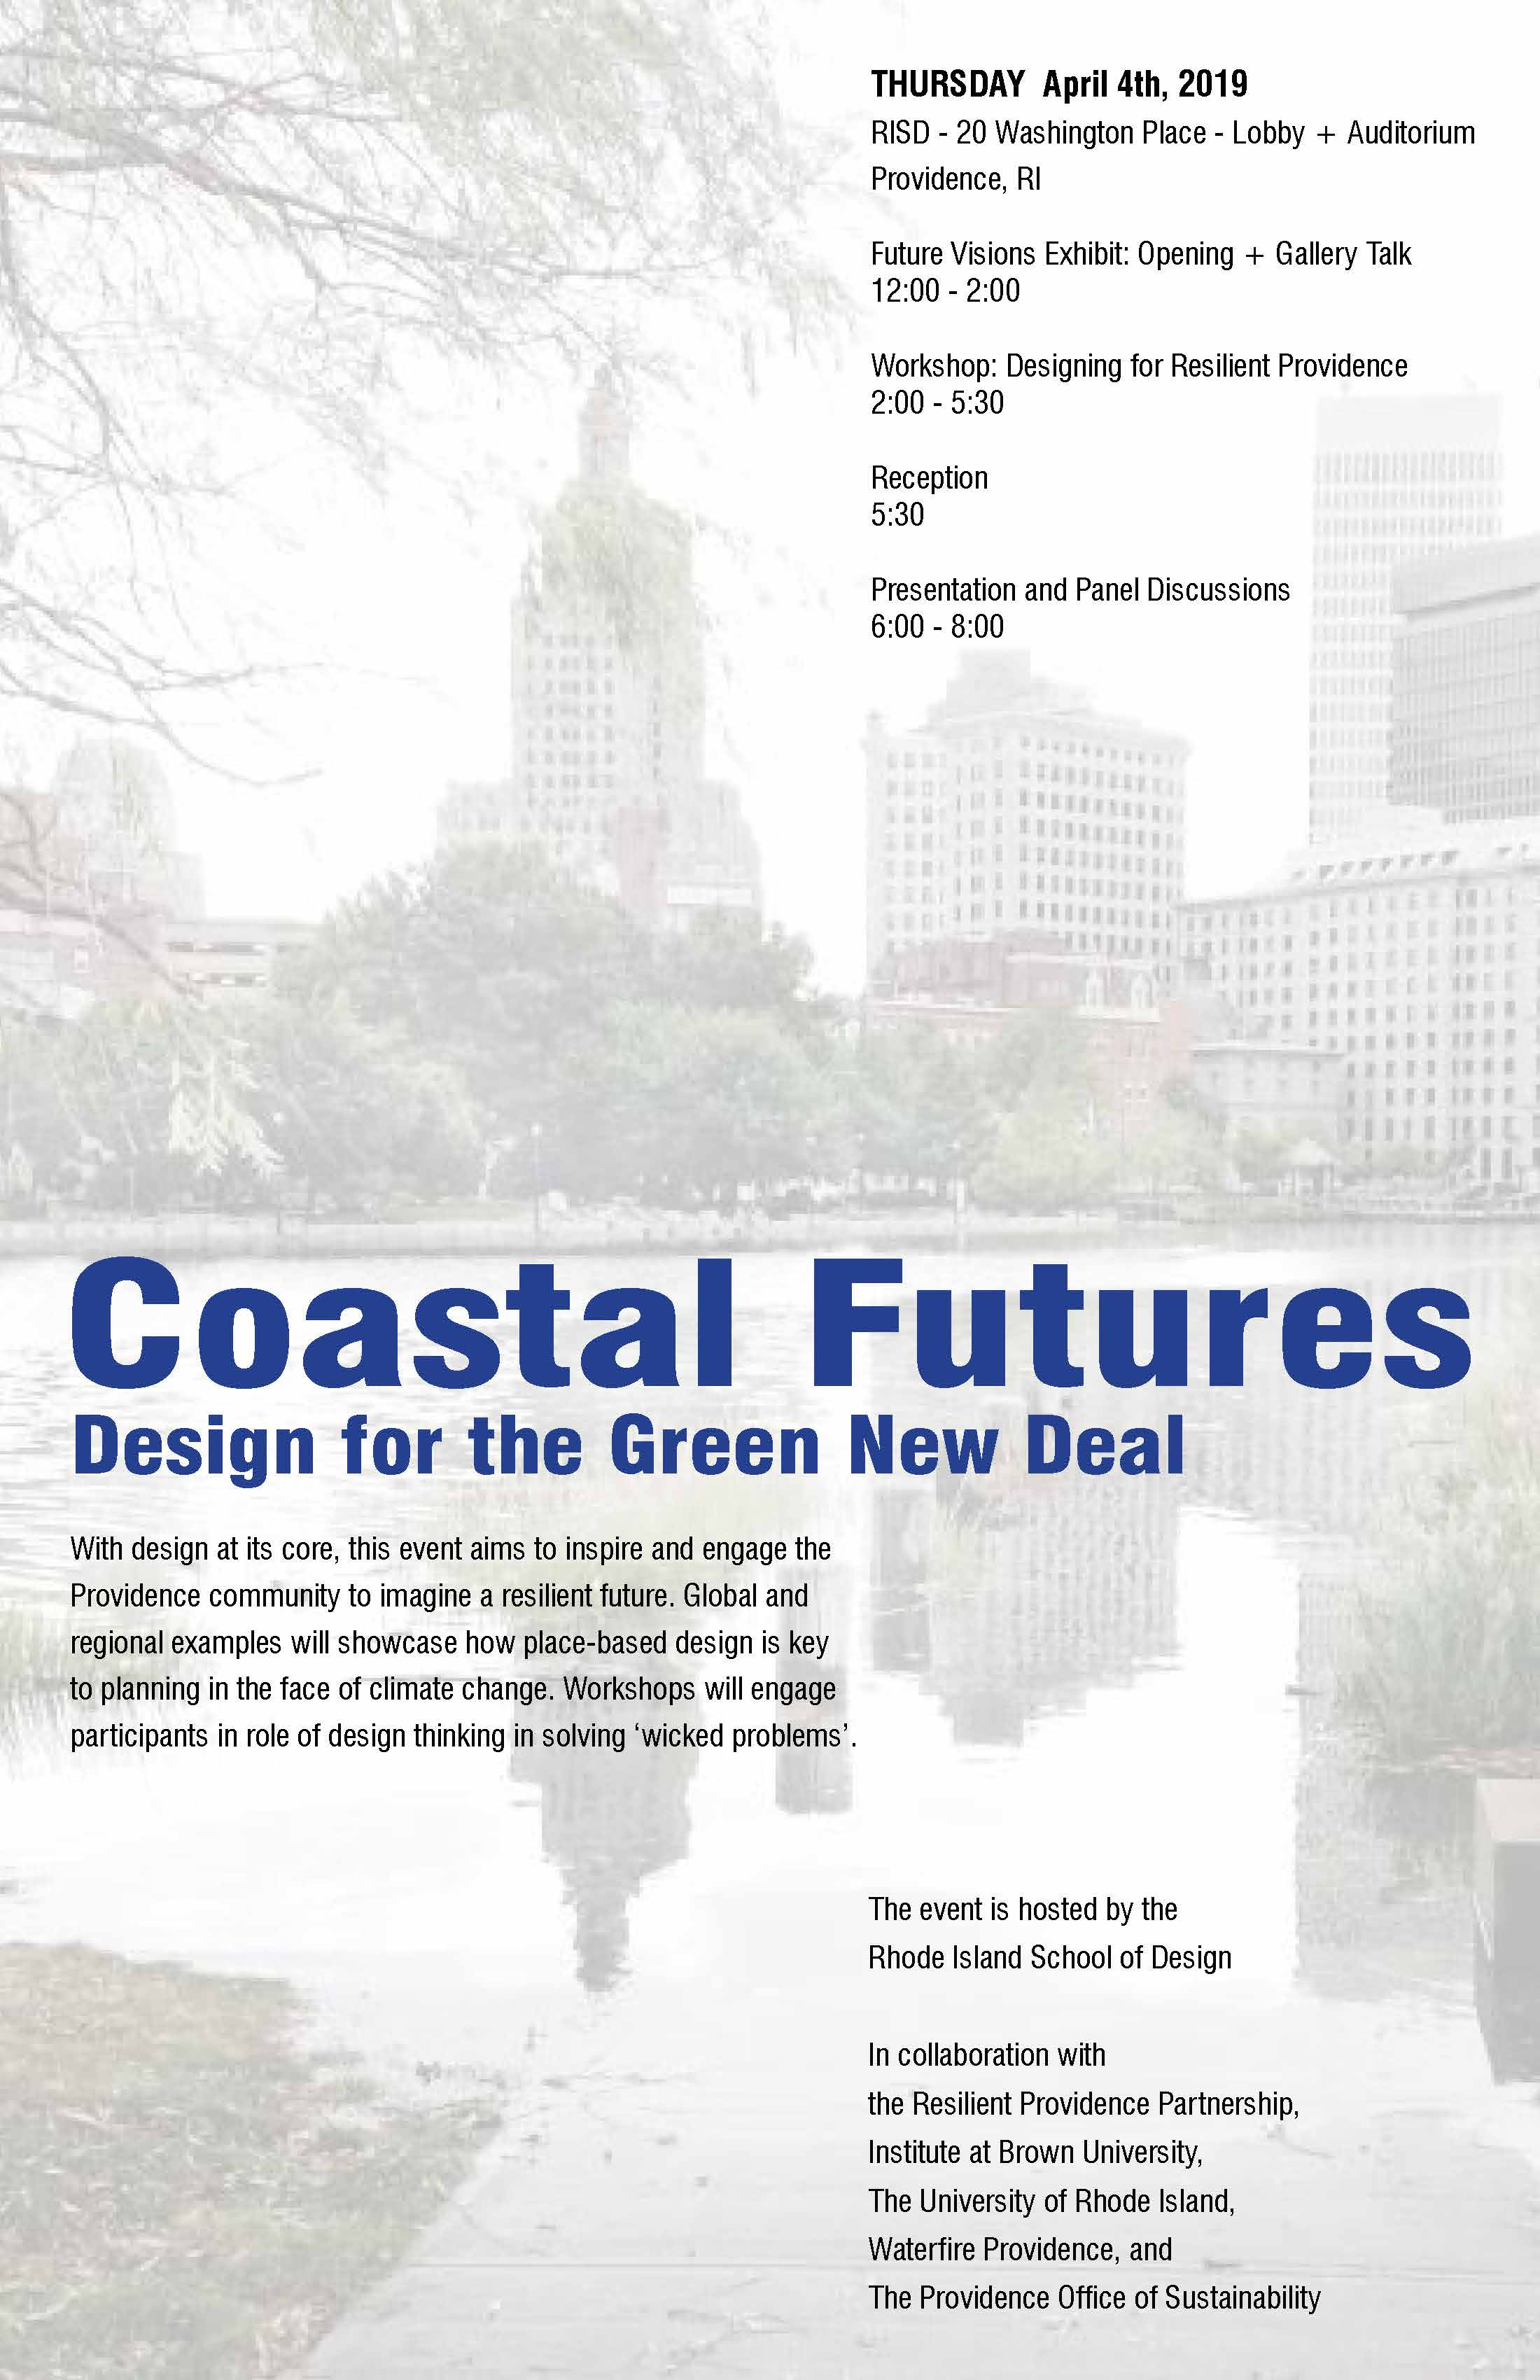 Utile's Jeff Geisinger to speak on RISD Coastal Futures panel